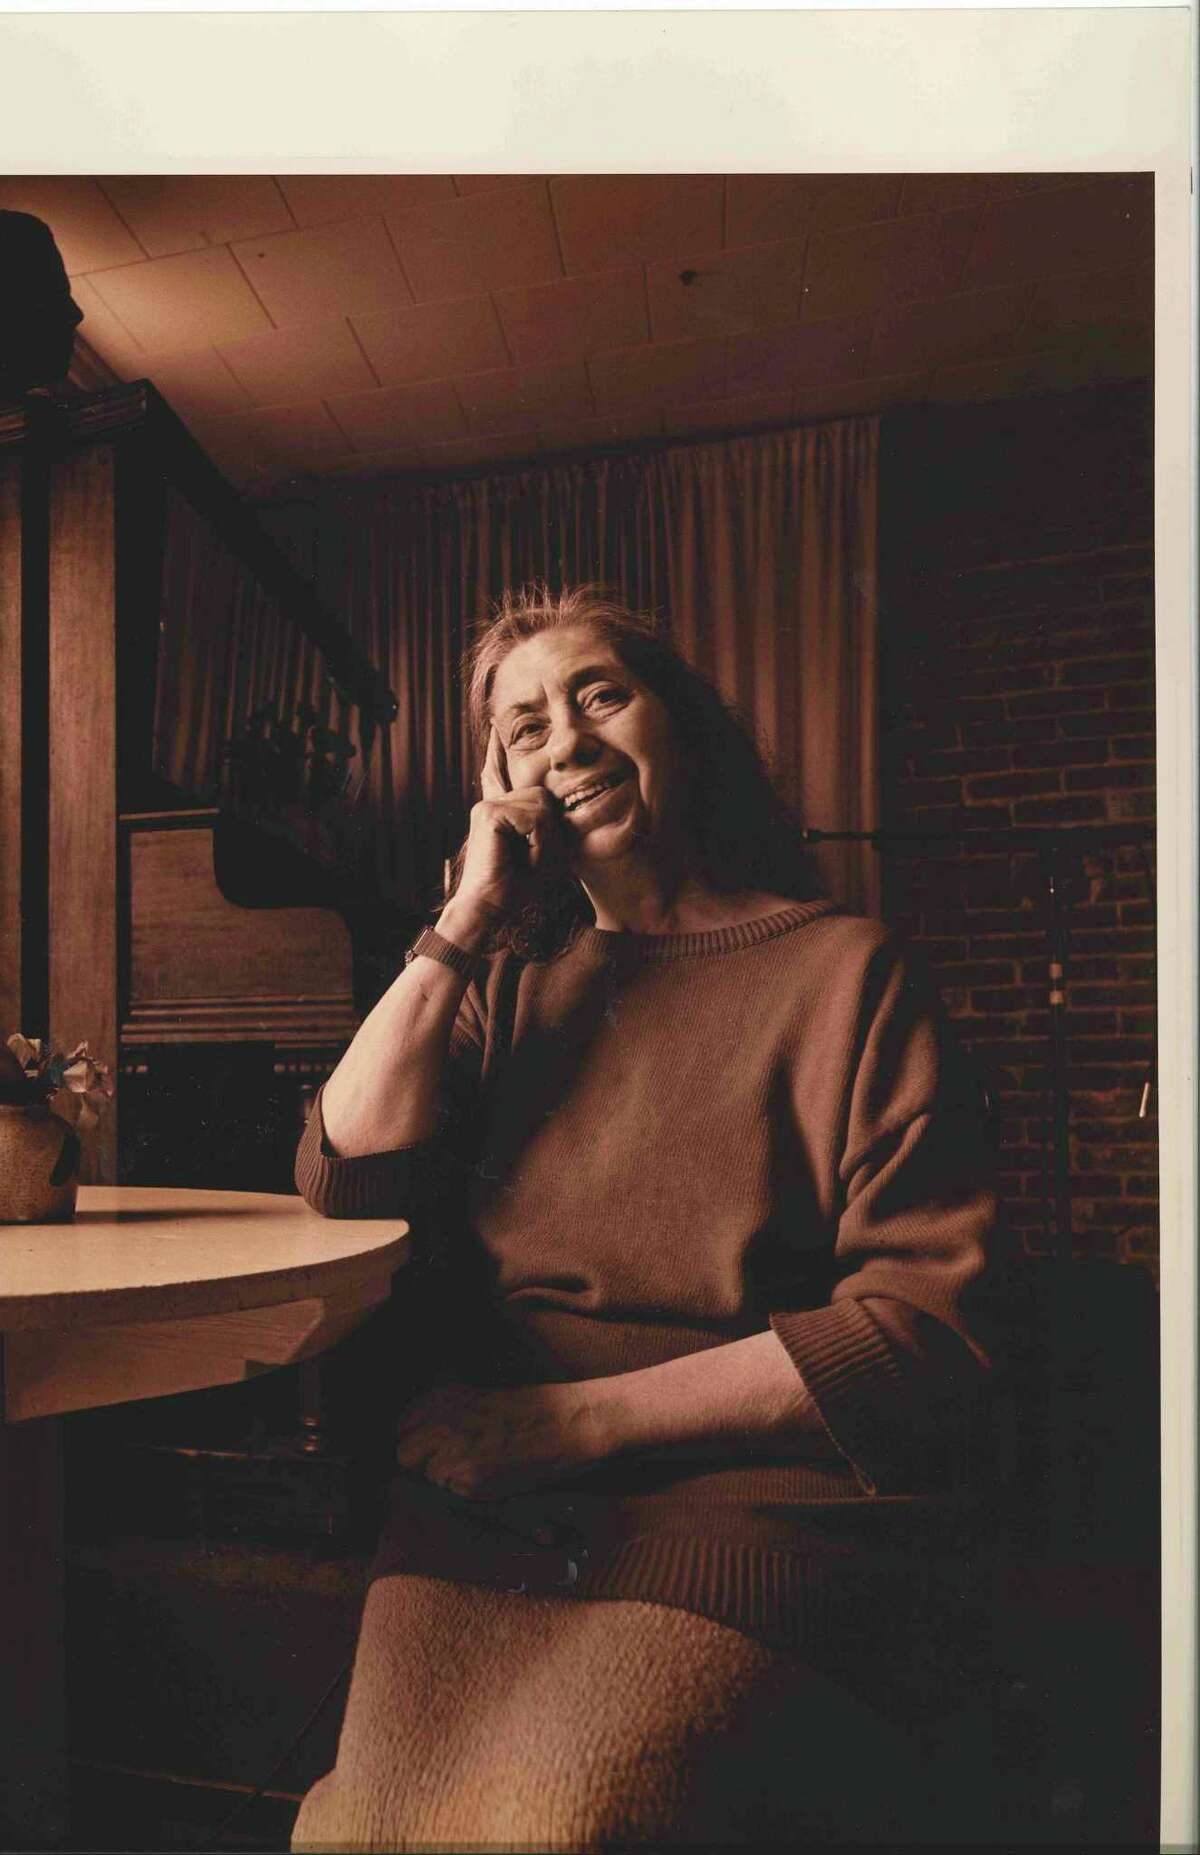 Lena Spencer, founder of Caffe Lena, is among the 2020 inductees of the Eddies Music Hall of Fame.